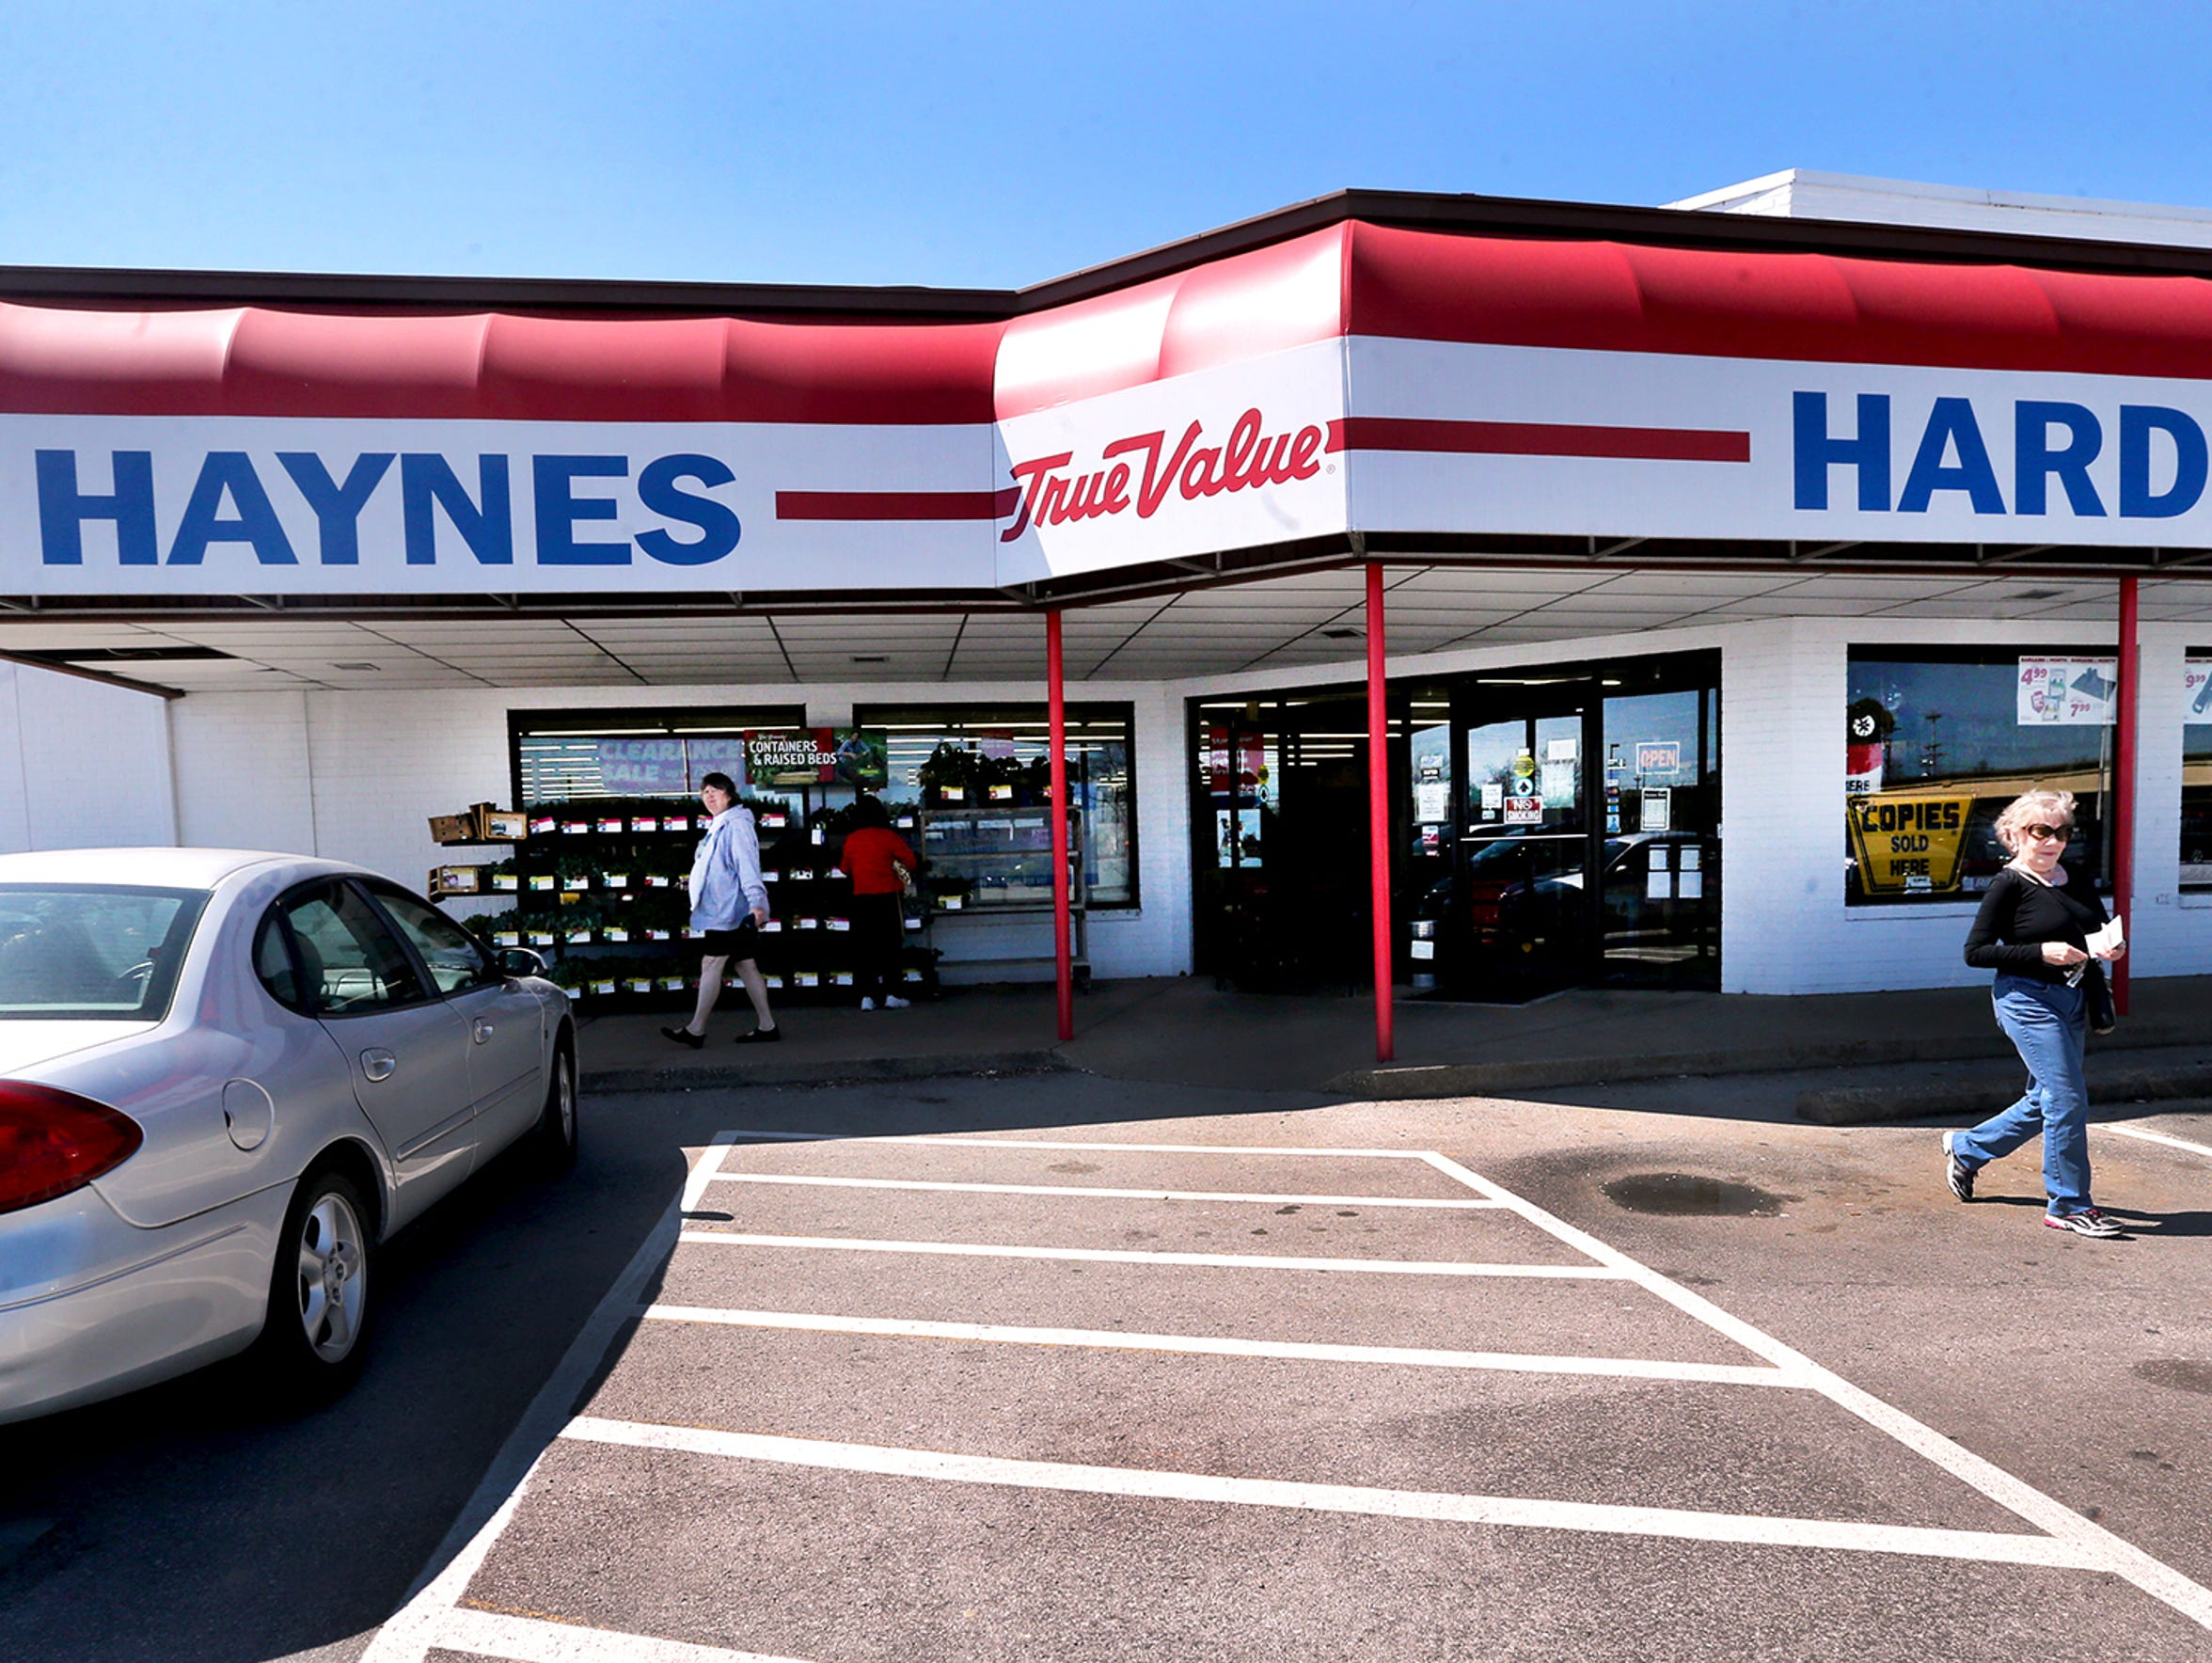 Haynes Hardware, which originally was located on the